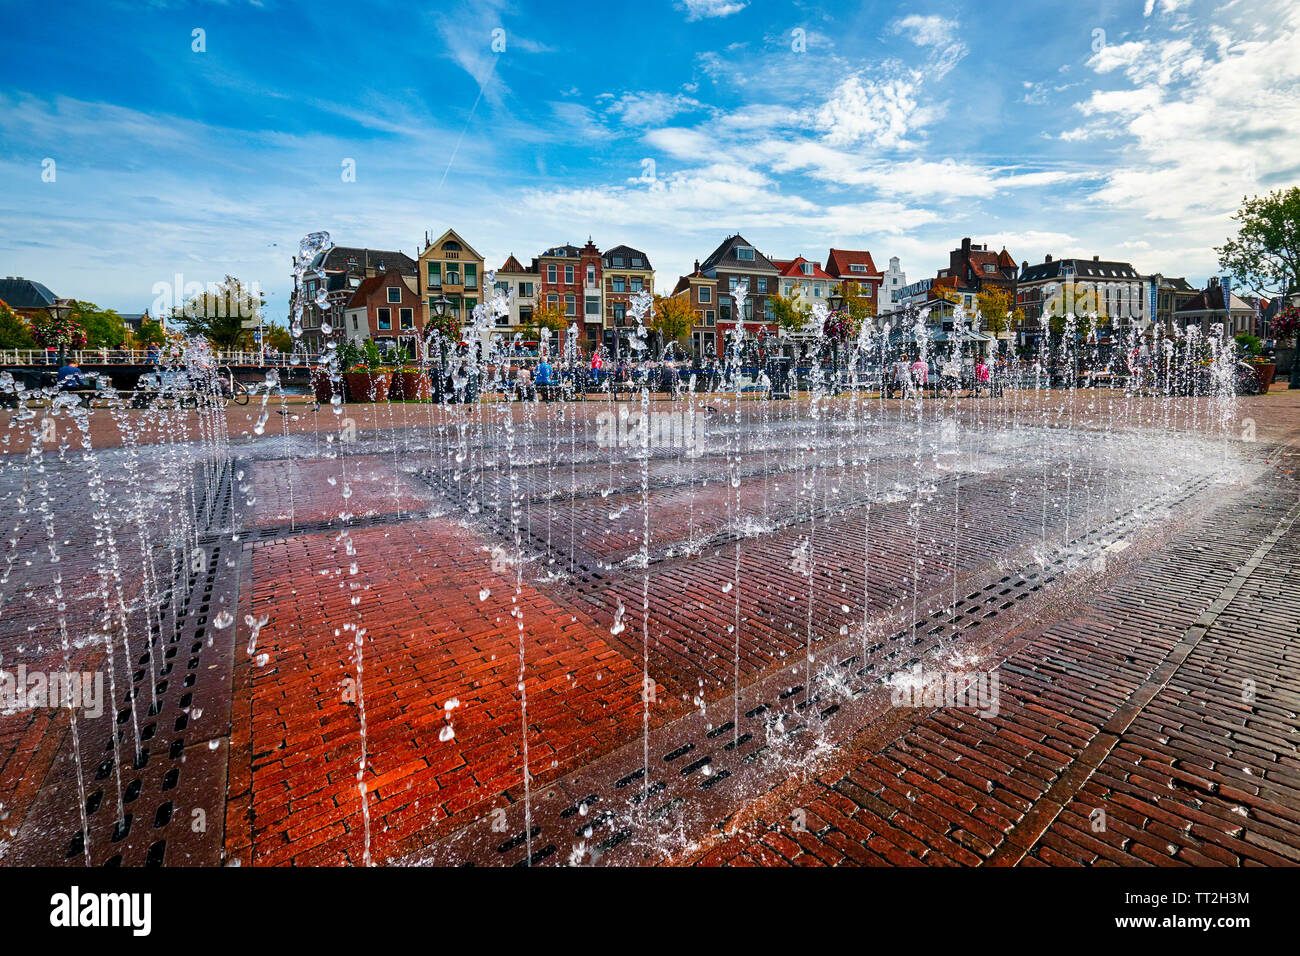 Close Up View of a Water Fountain on Beestenmarkt square, Leiden, South Holland Stock Photo